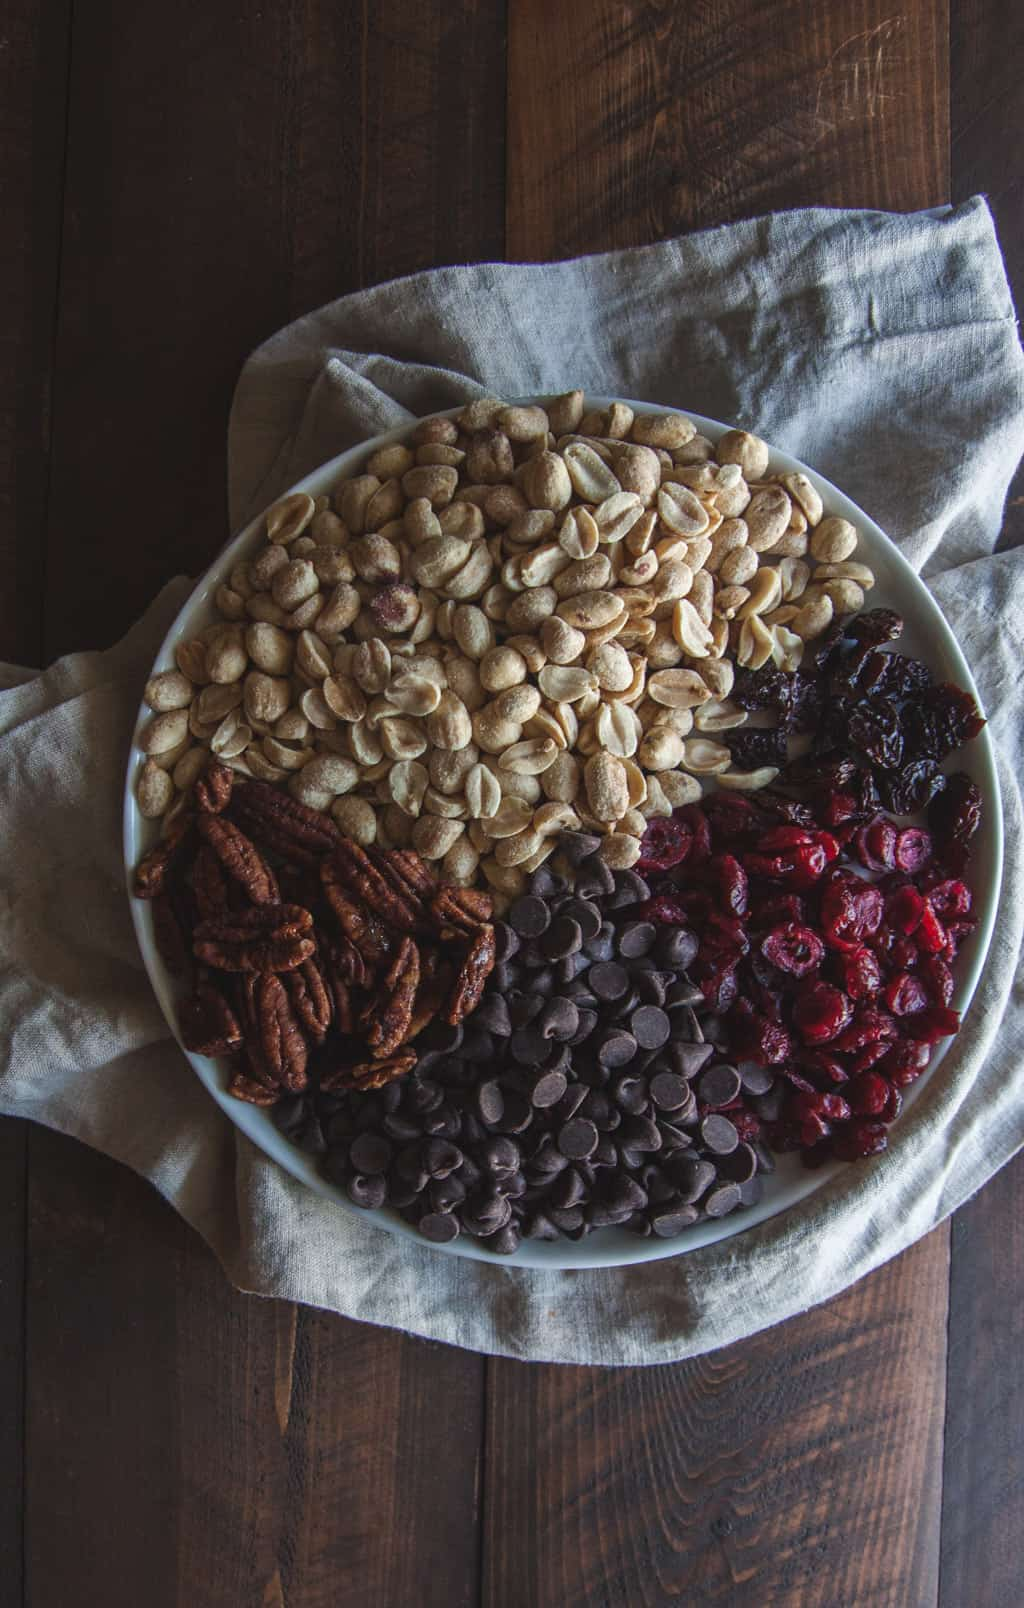 Wisconsin trail mix ingredients @sweetphi